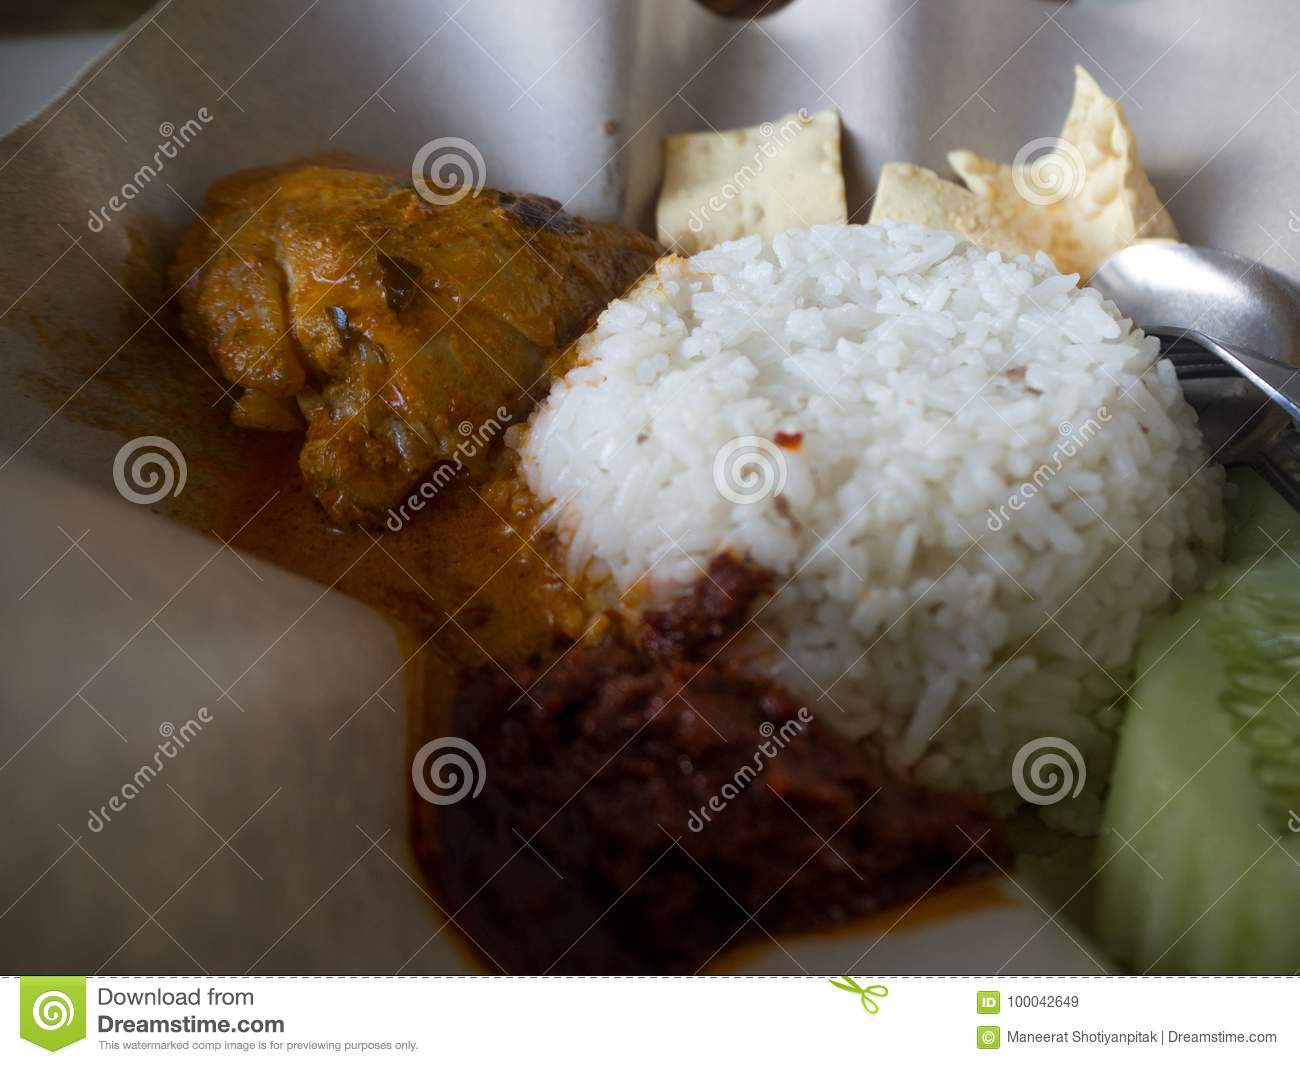 Penang food Chicken Curry with spicy sauce, Malaysia